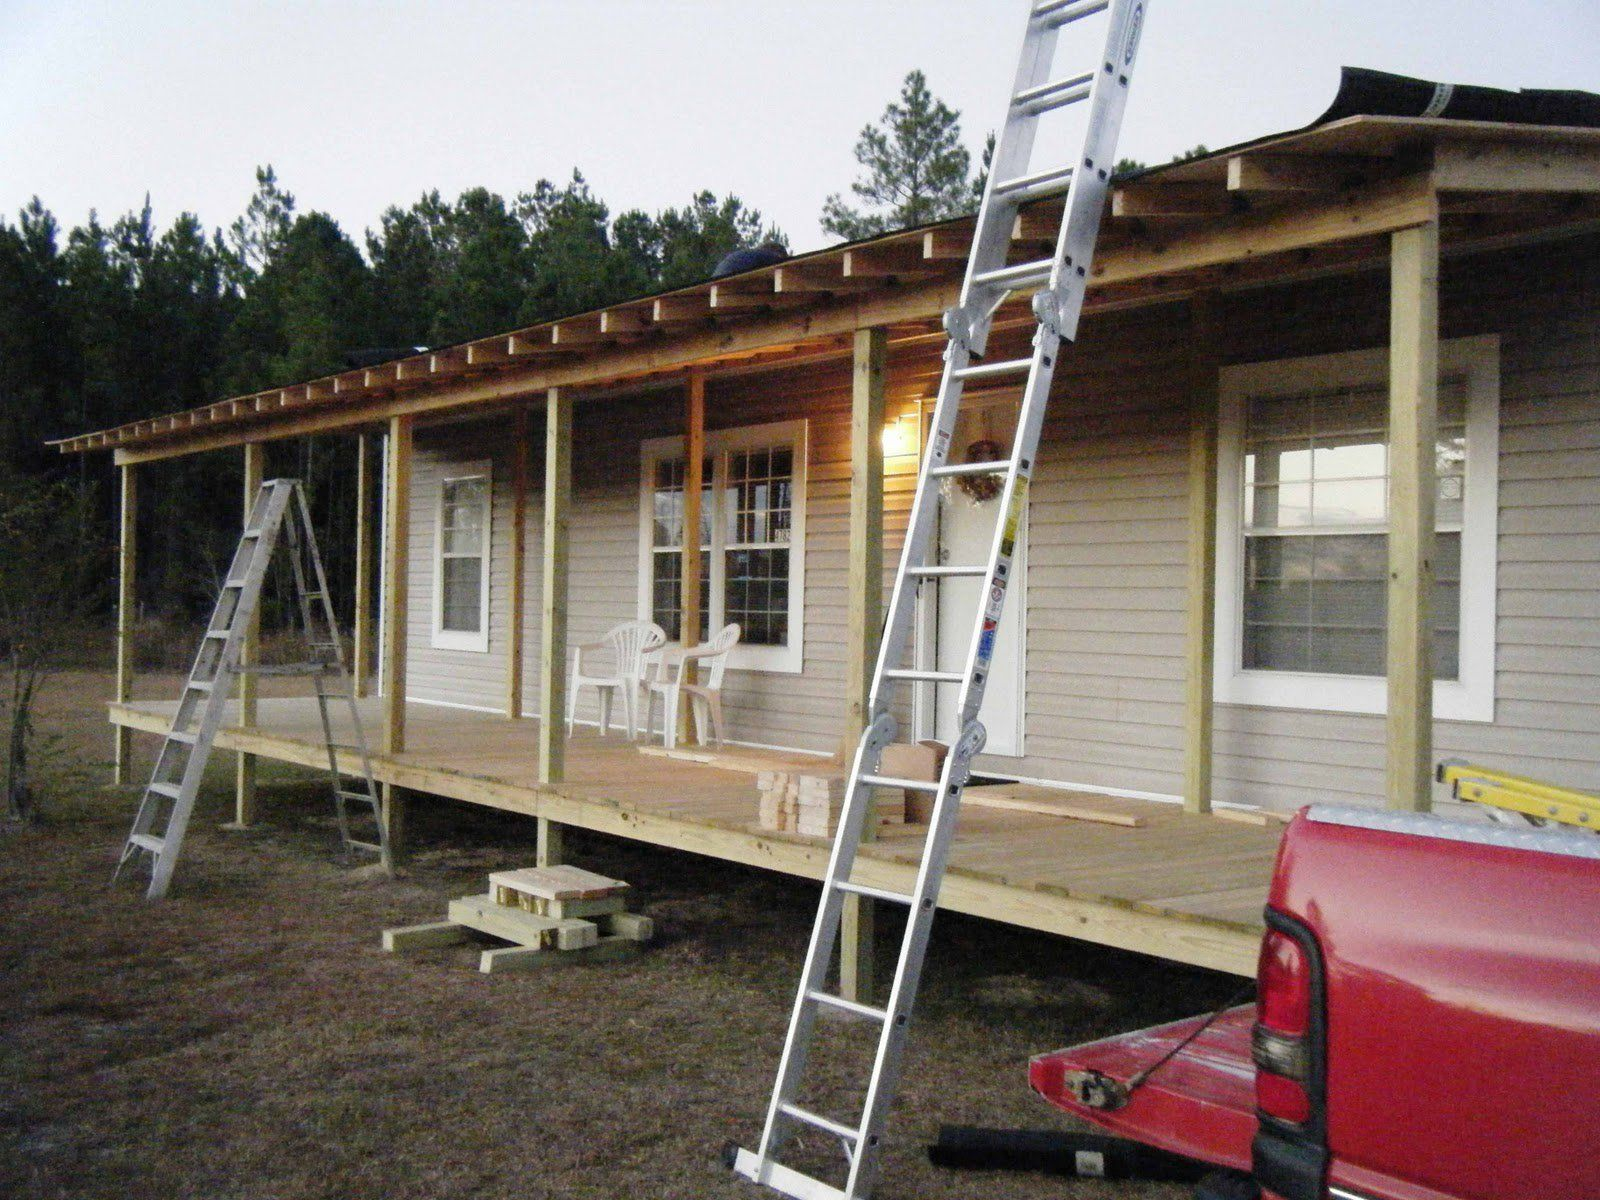 build a porch on a mobile home - Google Search | new house ...